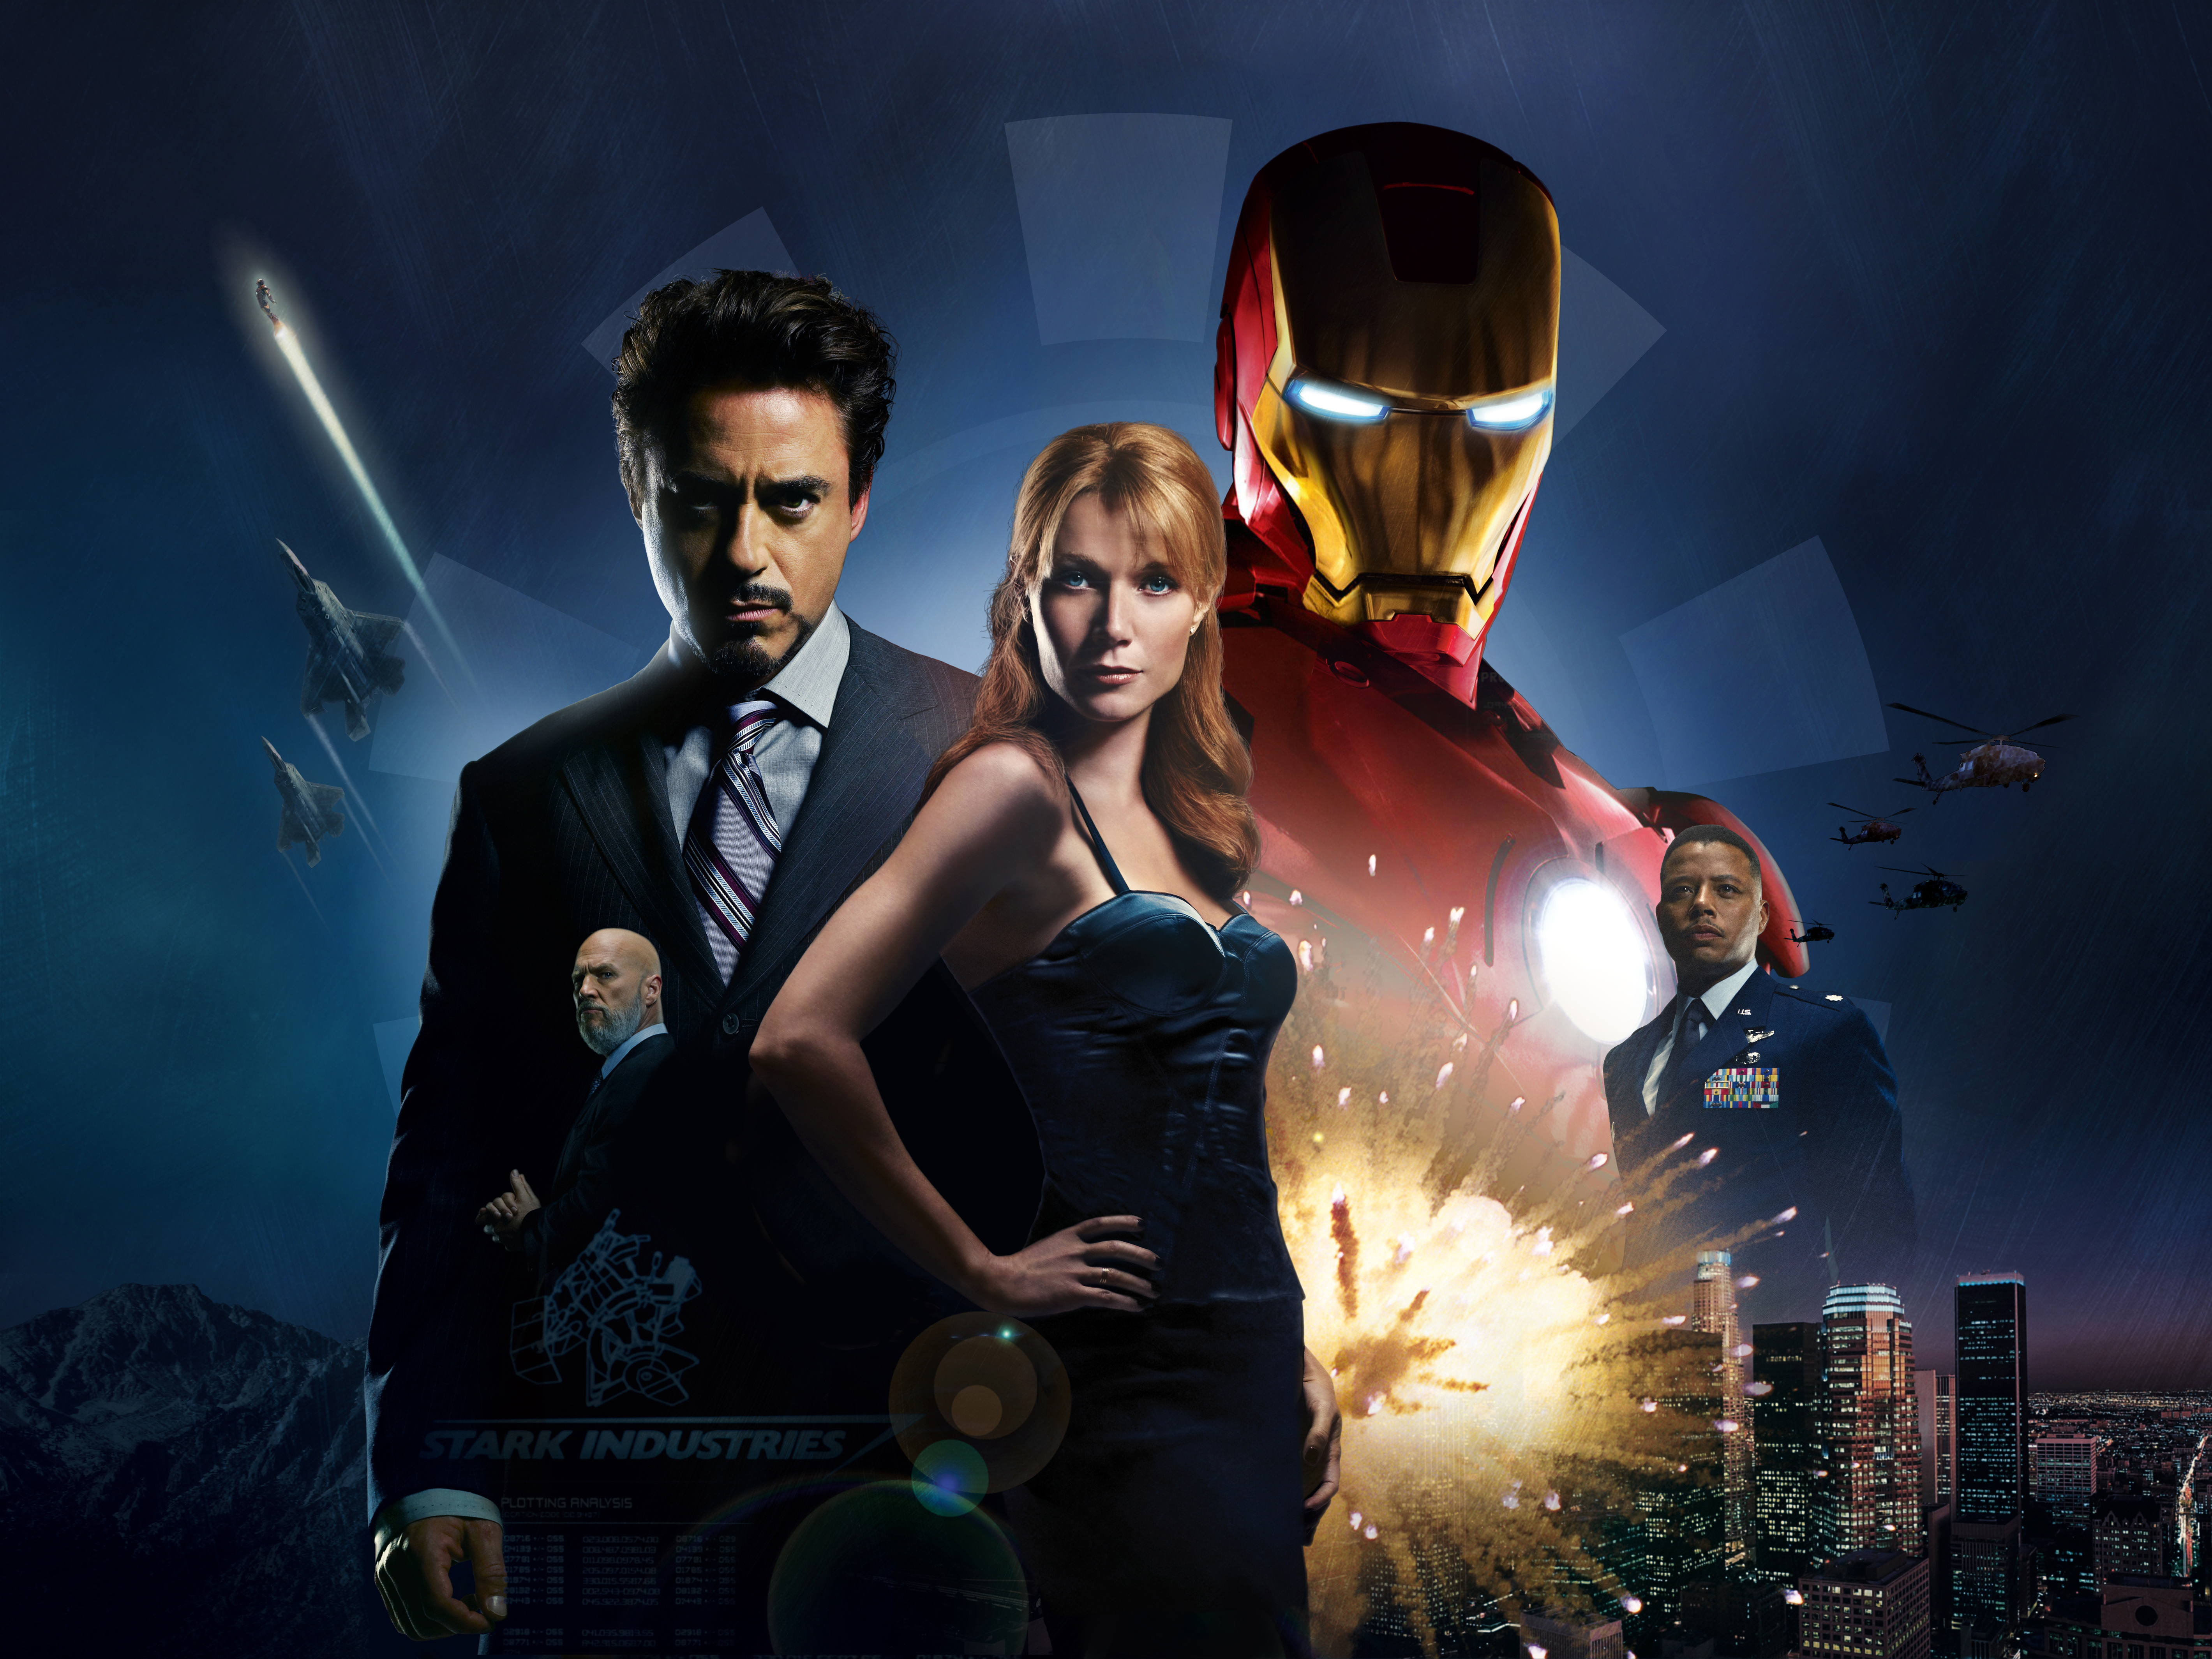 1366x768 Iron Man 2008 1366x768 Resolution Hd 4k Wallpapers Images Backgrounds Photos And Pictures